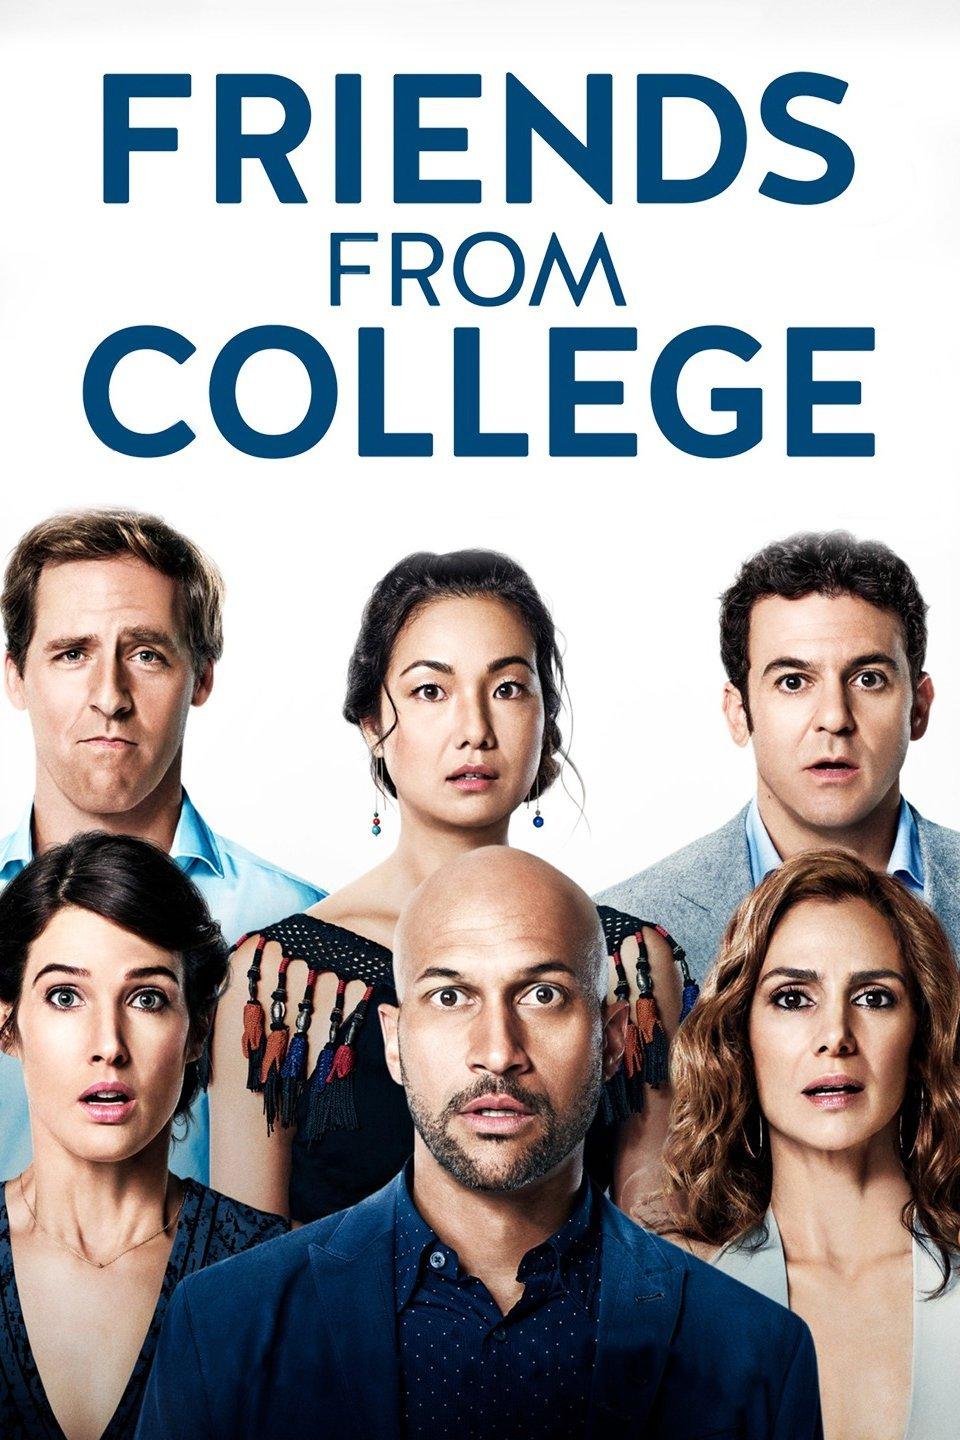 Friends from College Season 1 Complete 480p WEBRip